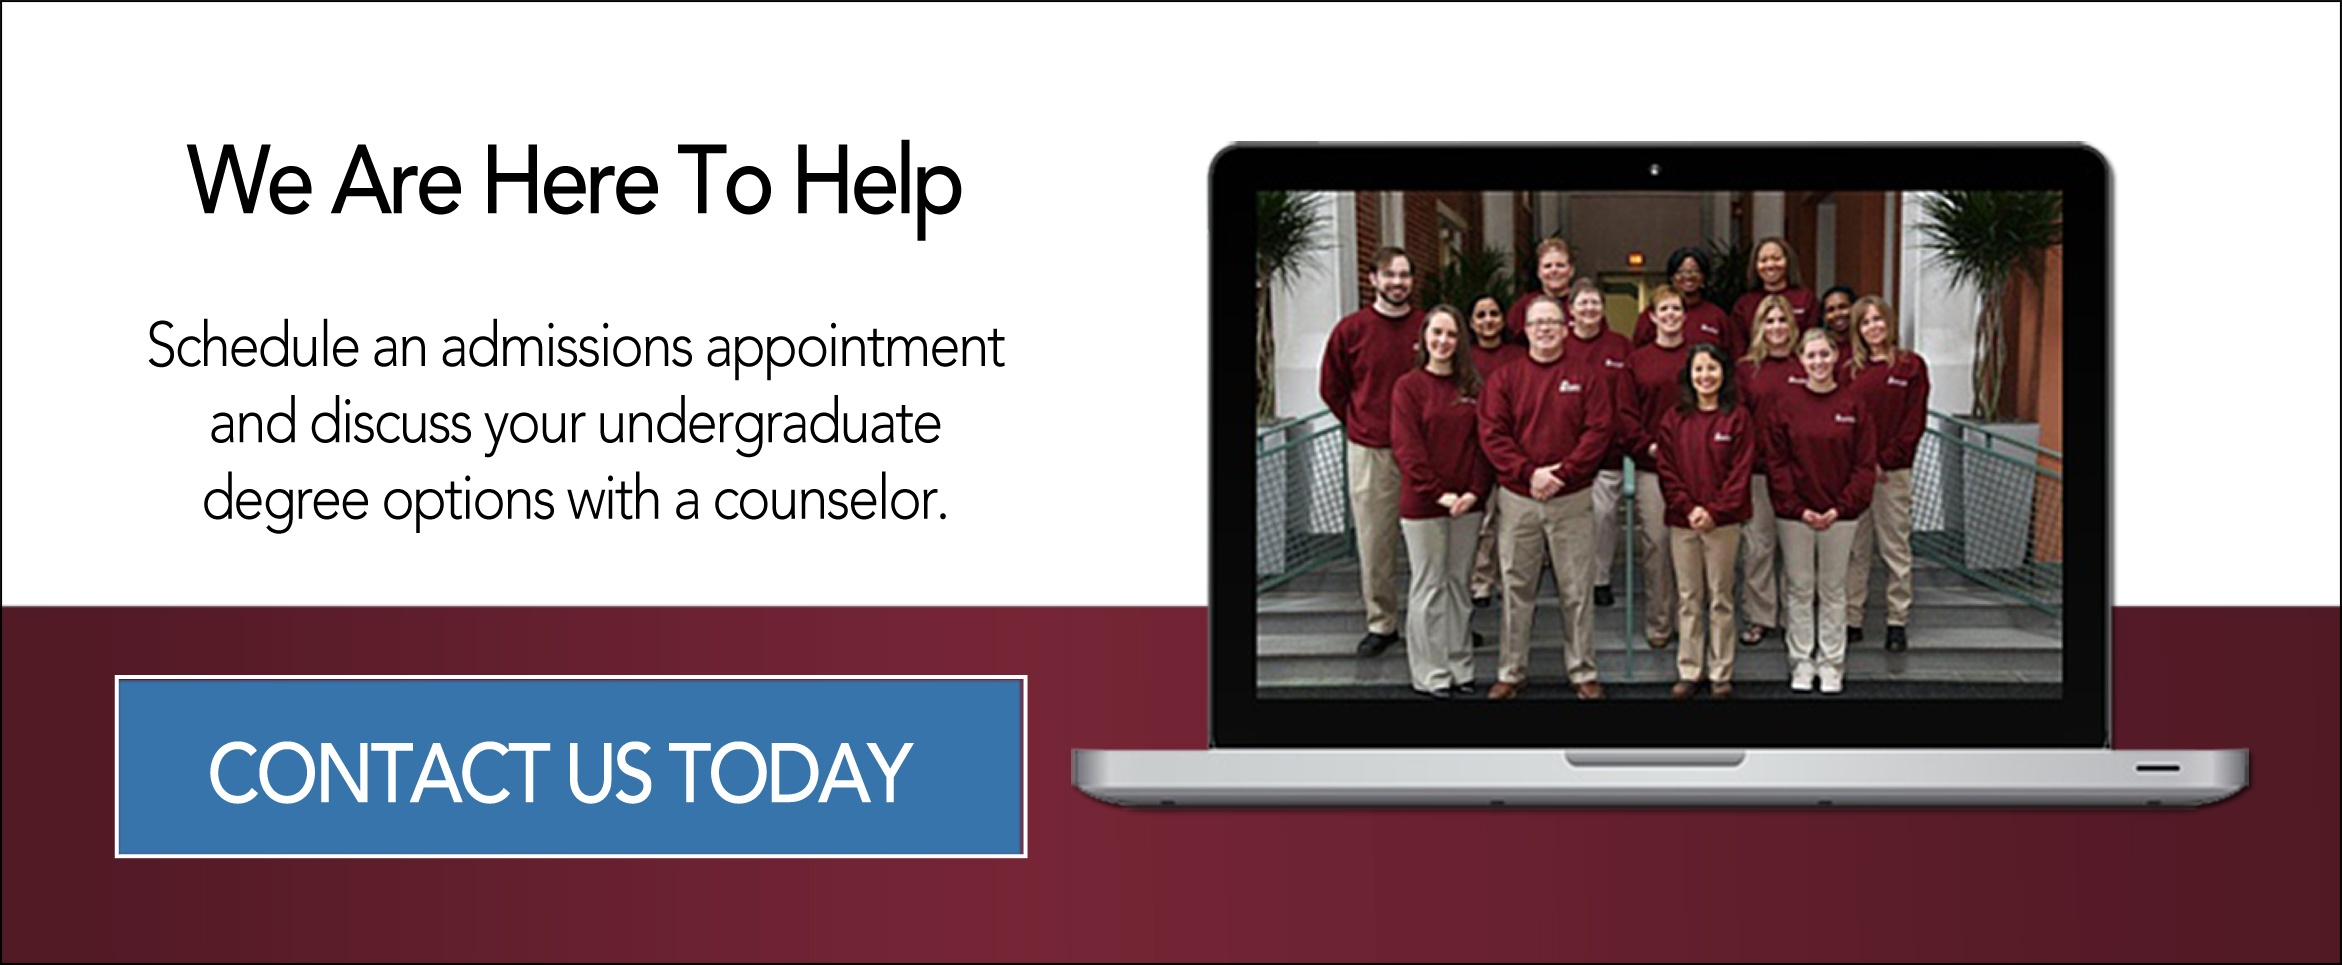 Contact Undergraduate Admissions Today